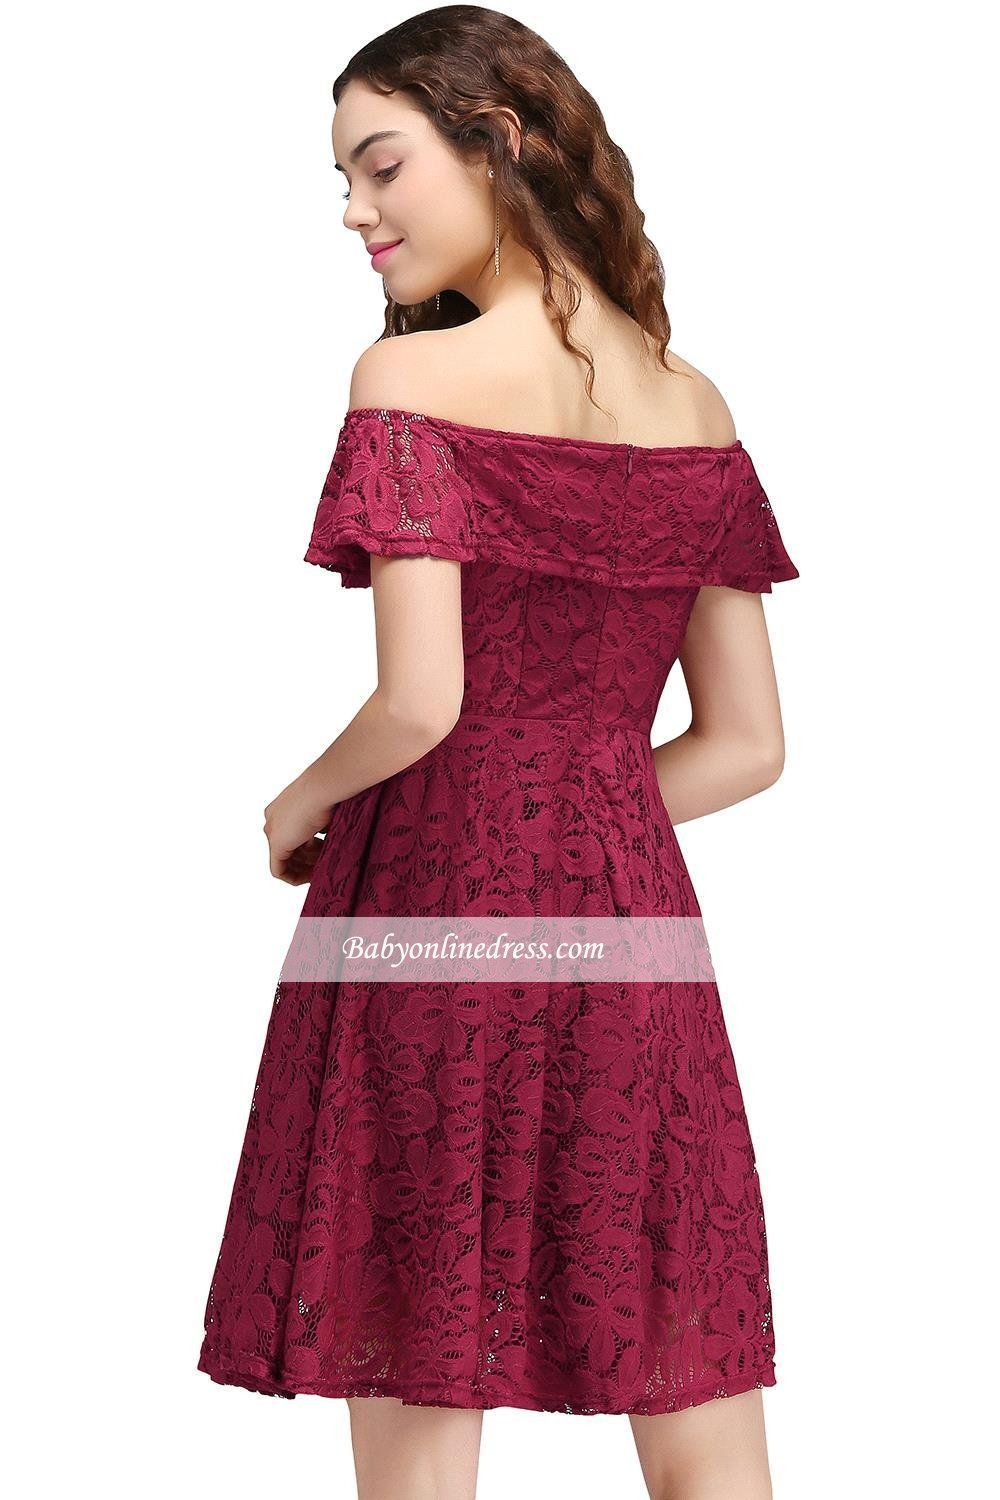 Q Christmas Big Promotion !Best Gift For Christmas! Sheath Off-The-Shoulder Short Burgundy Lace Homecoming Dresses (2, Burgundy)